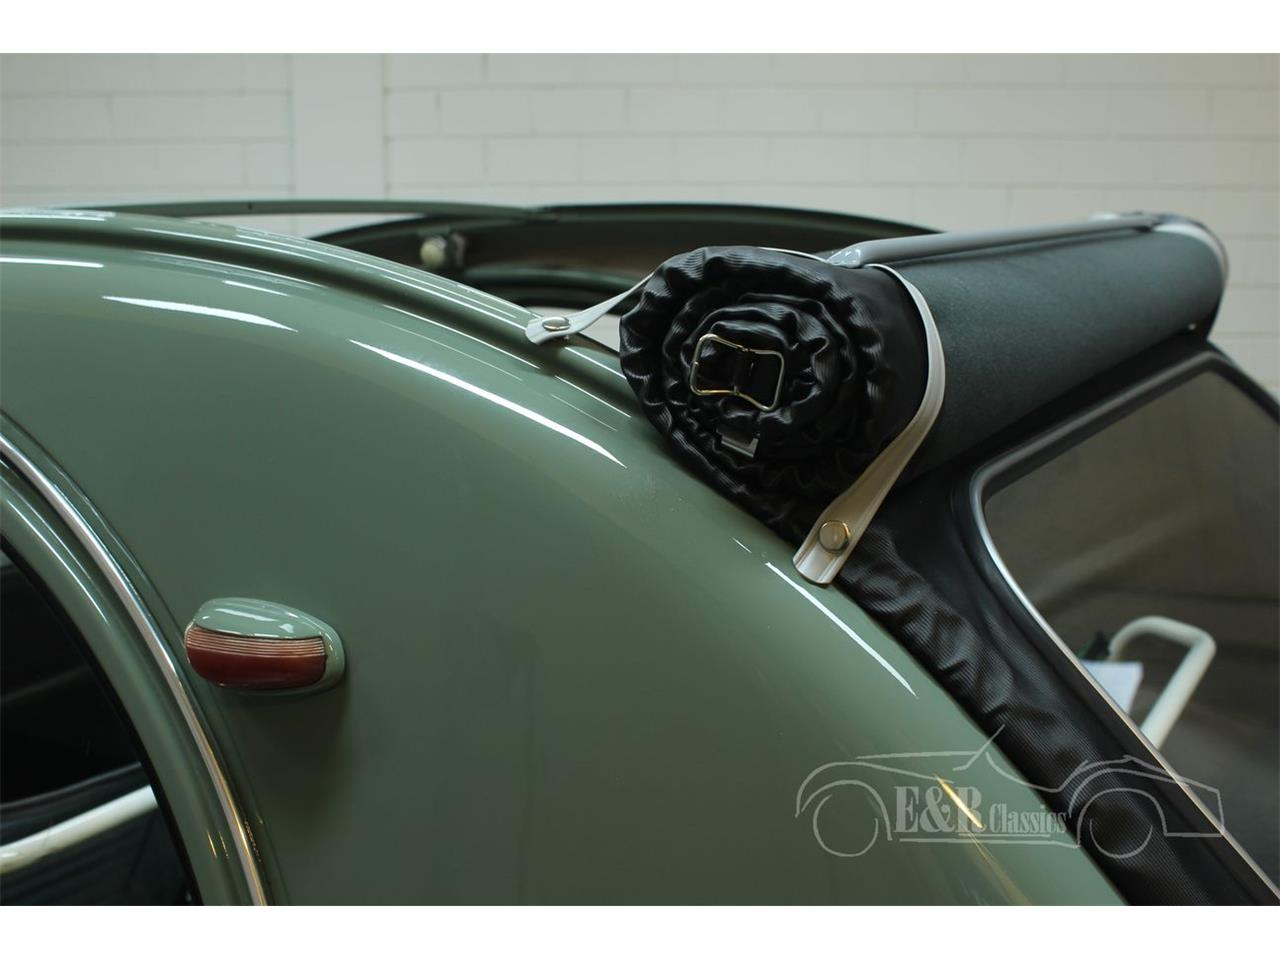 Large Picture of Classic 1957 2CV located in - Keine Angabe - Offered by E & R Classics - PCQ6